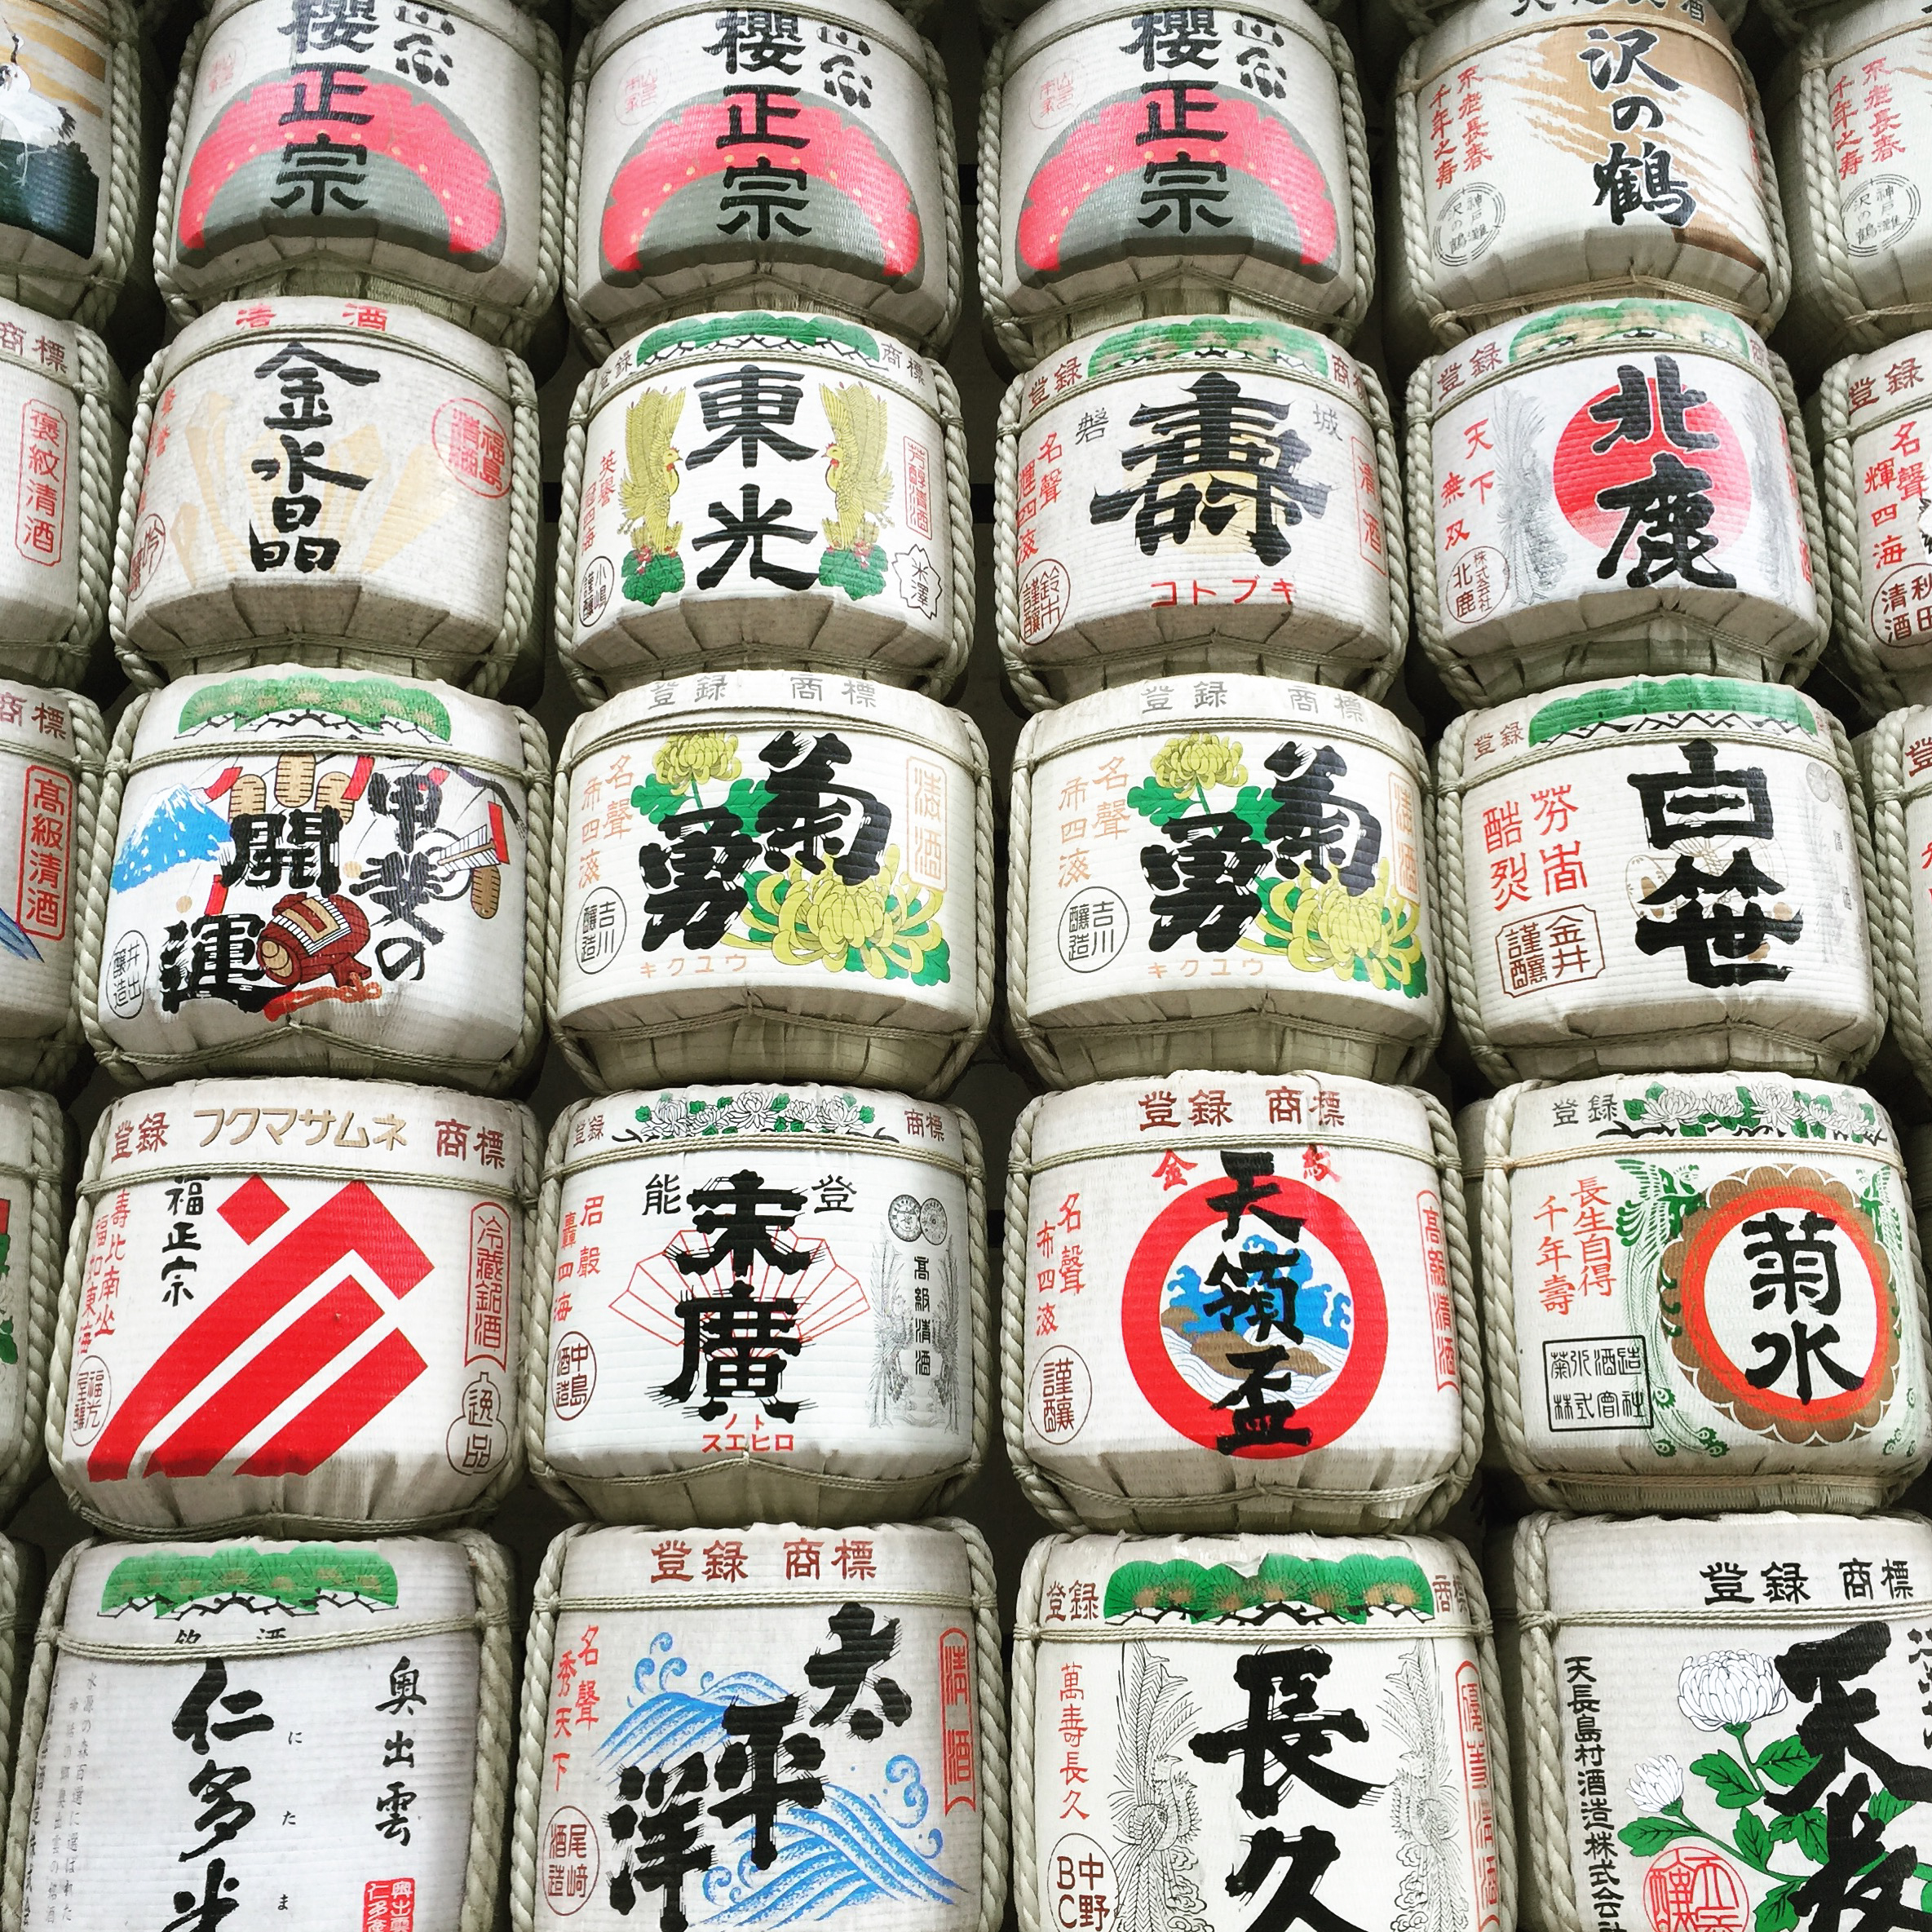 Soju, Japan's alcohol of choice, in barrels leading up to the shrine